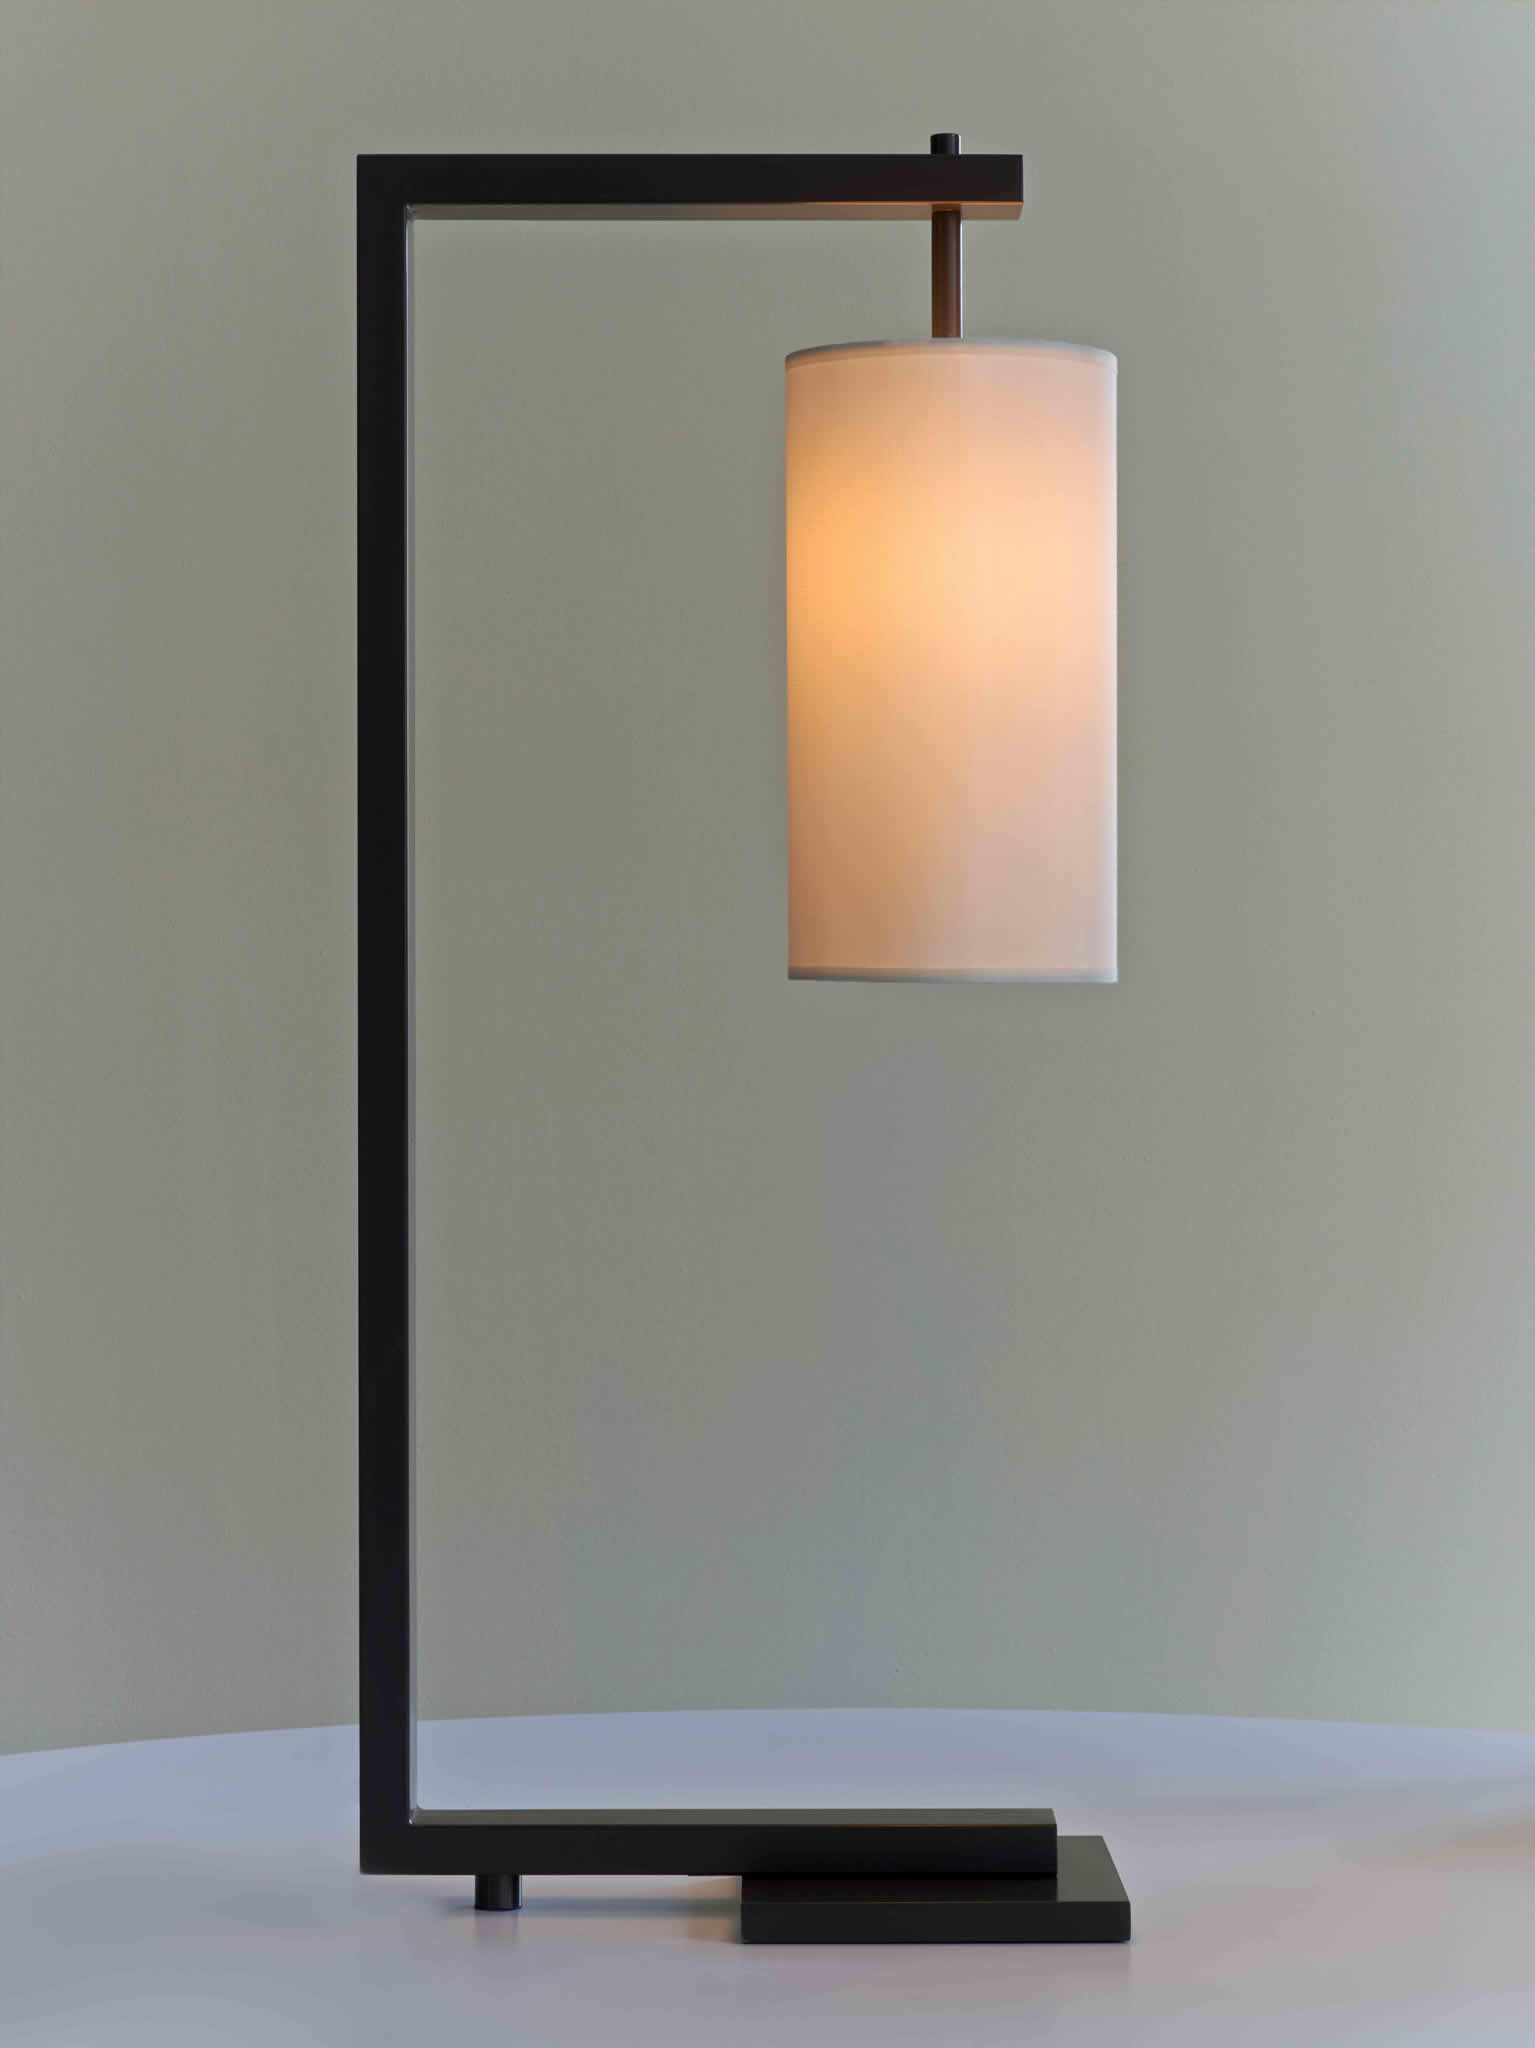 Cl sterling son peabody table lamp for Table 52 2014